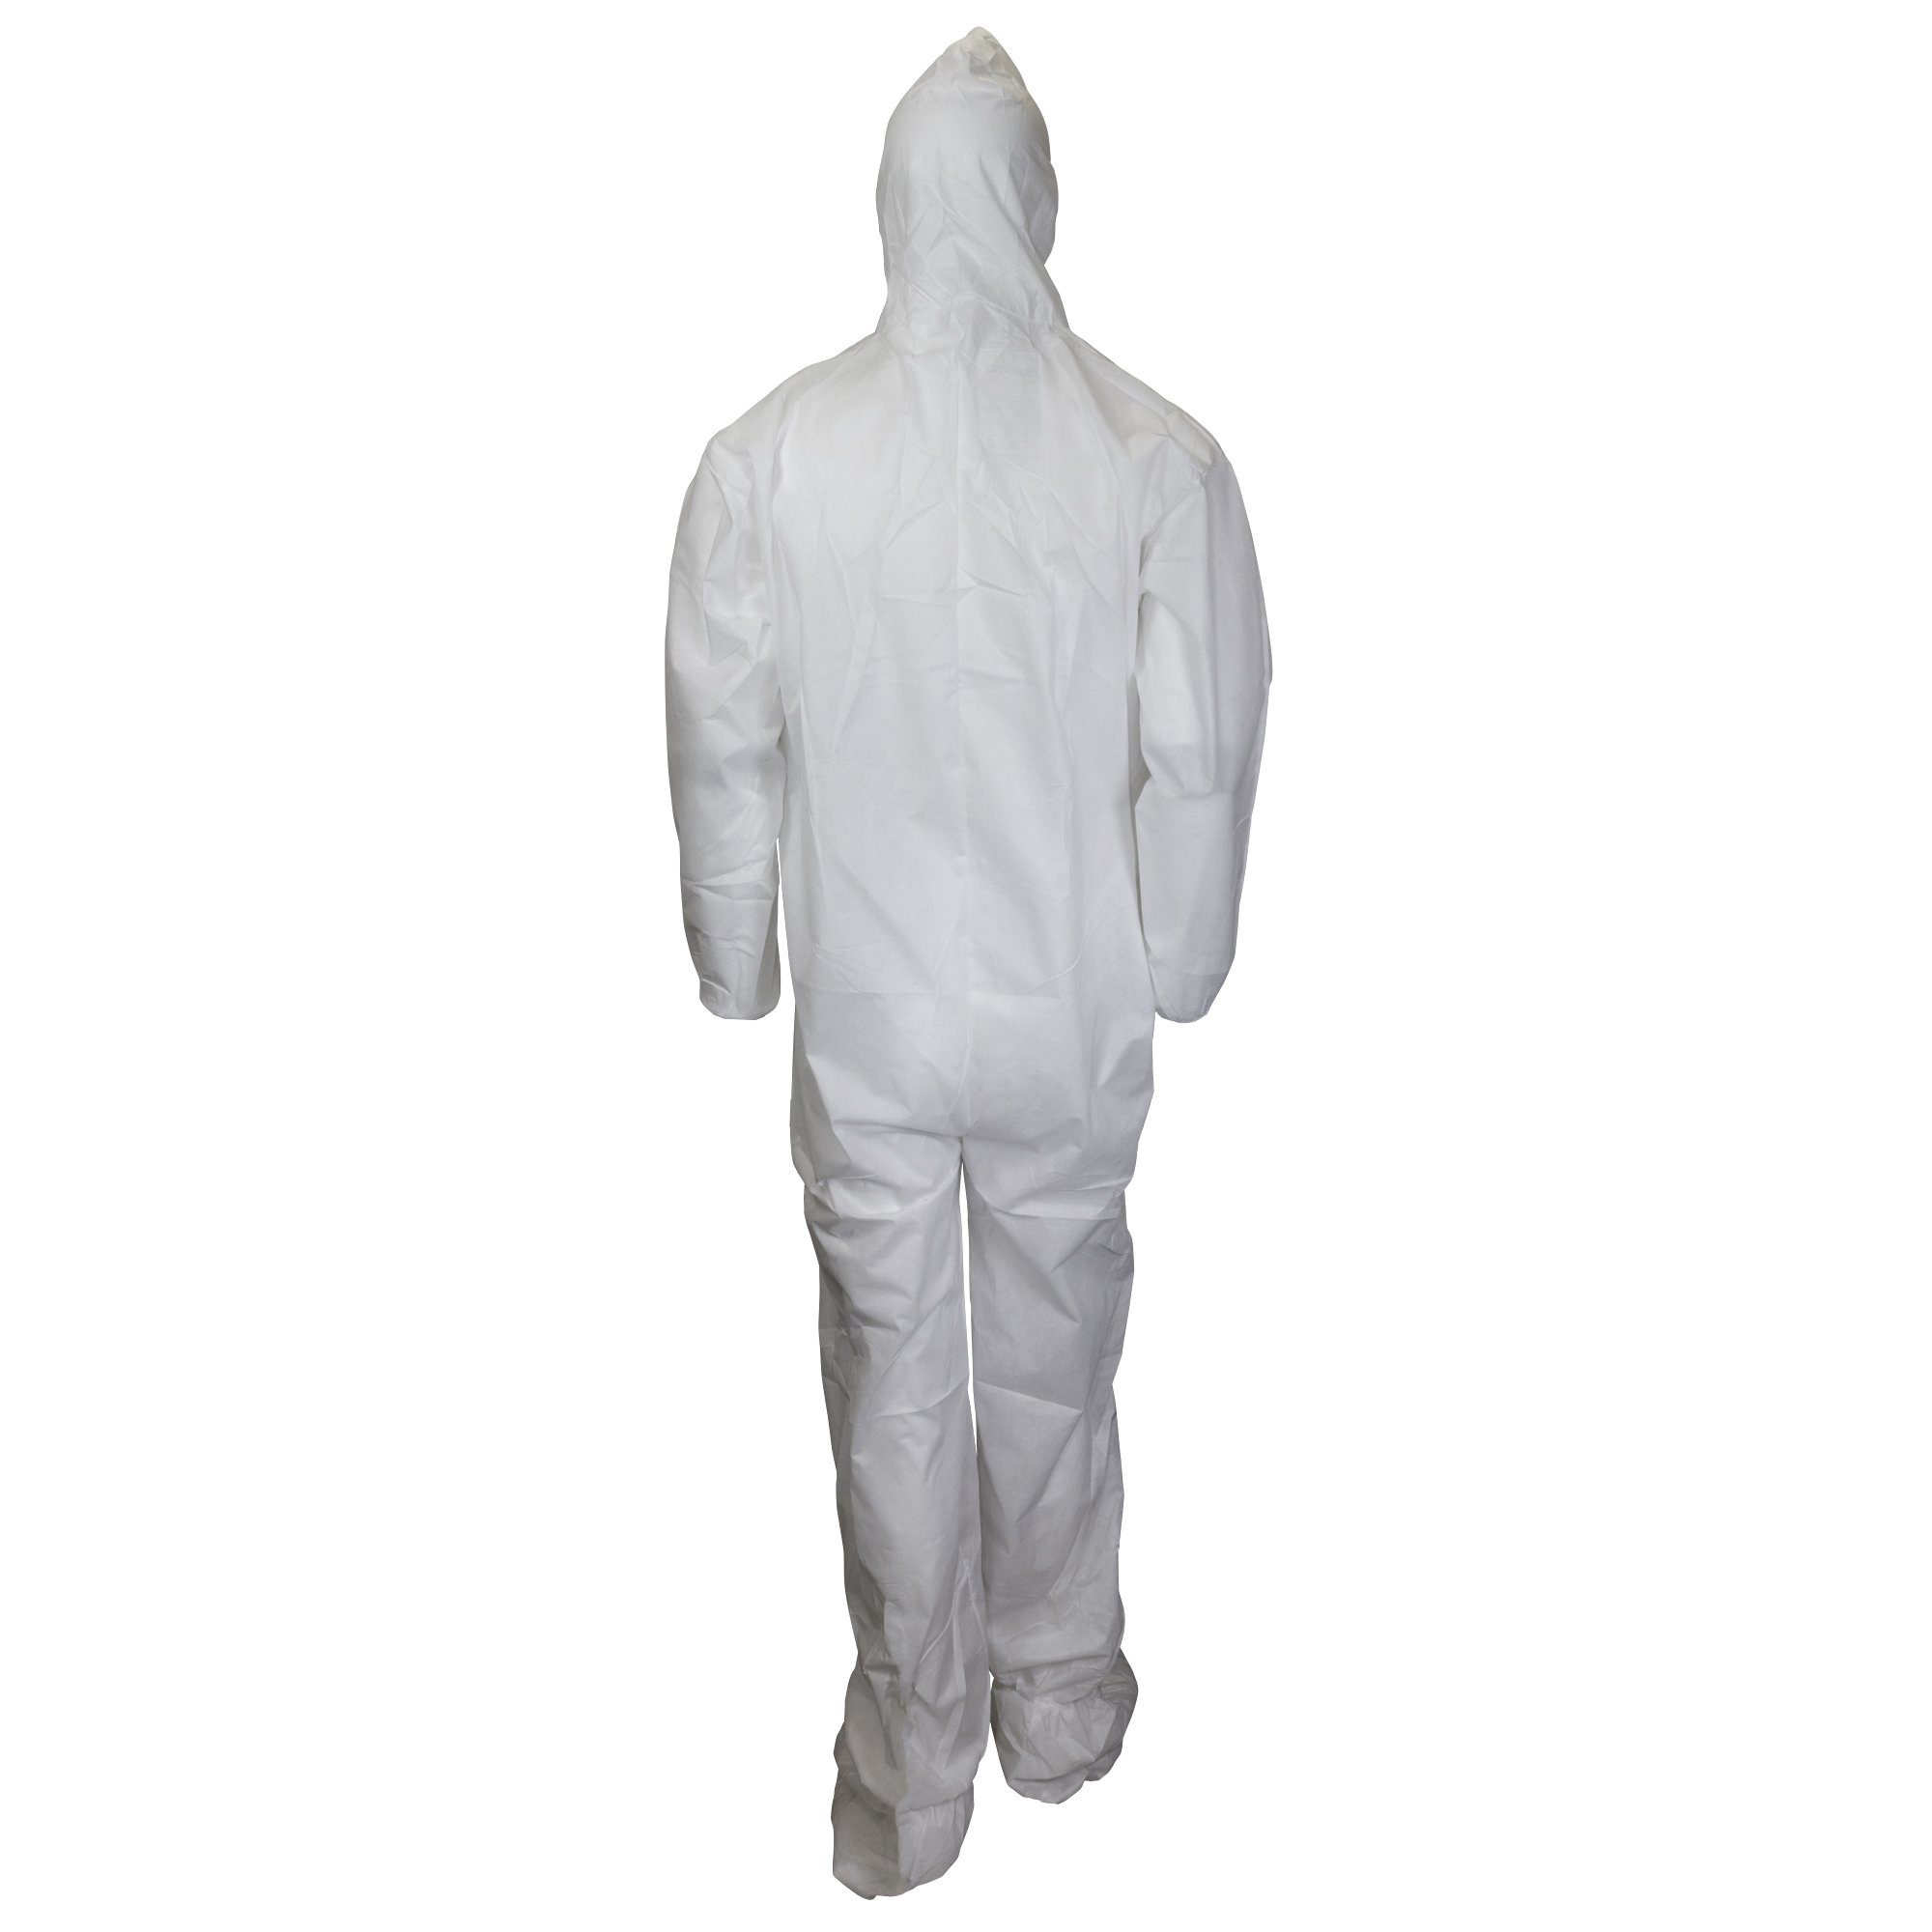 Kleenguard A10 Light Duty Coveralls (10631), Zip Front, Elastic Wrists, Hood, Boots, Breathable Material, White, 2XL, 25 / Case by Kimberly-Clark Professional (Image #3)